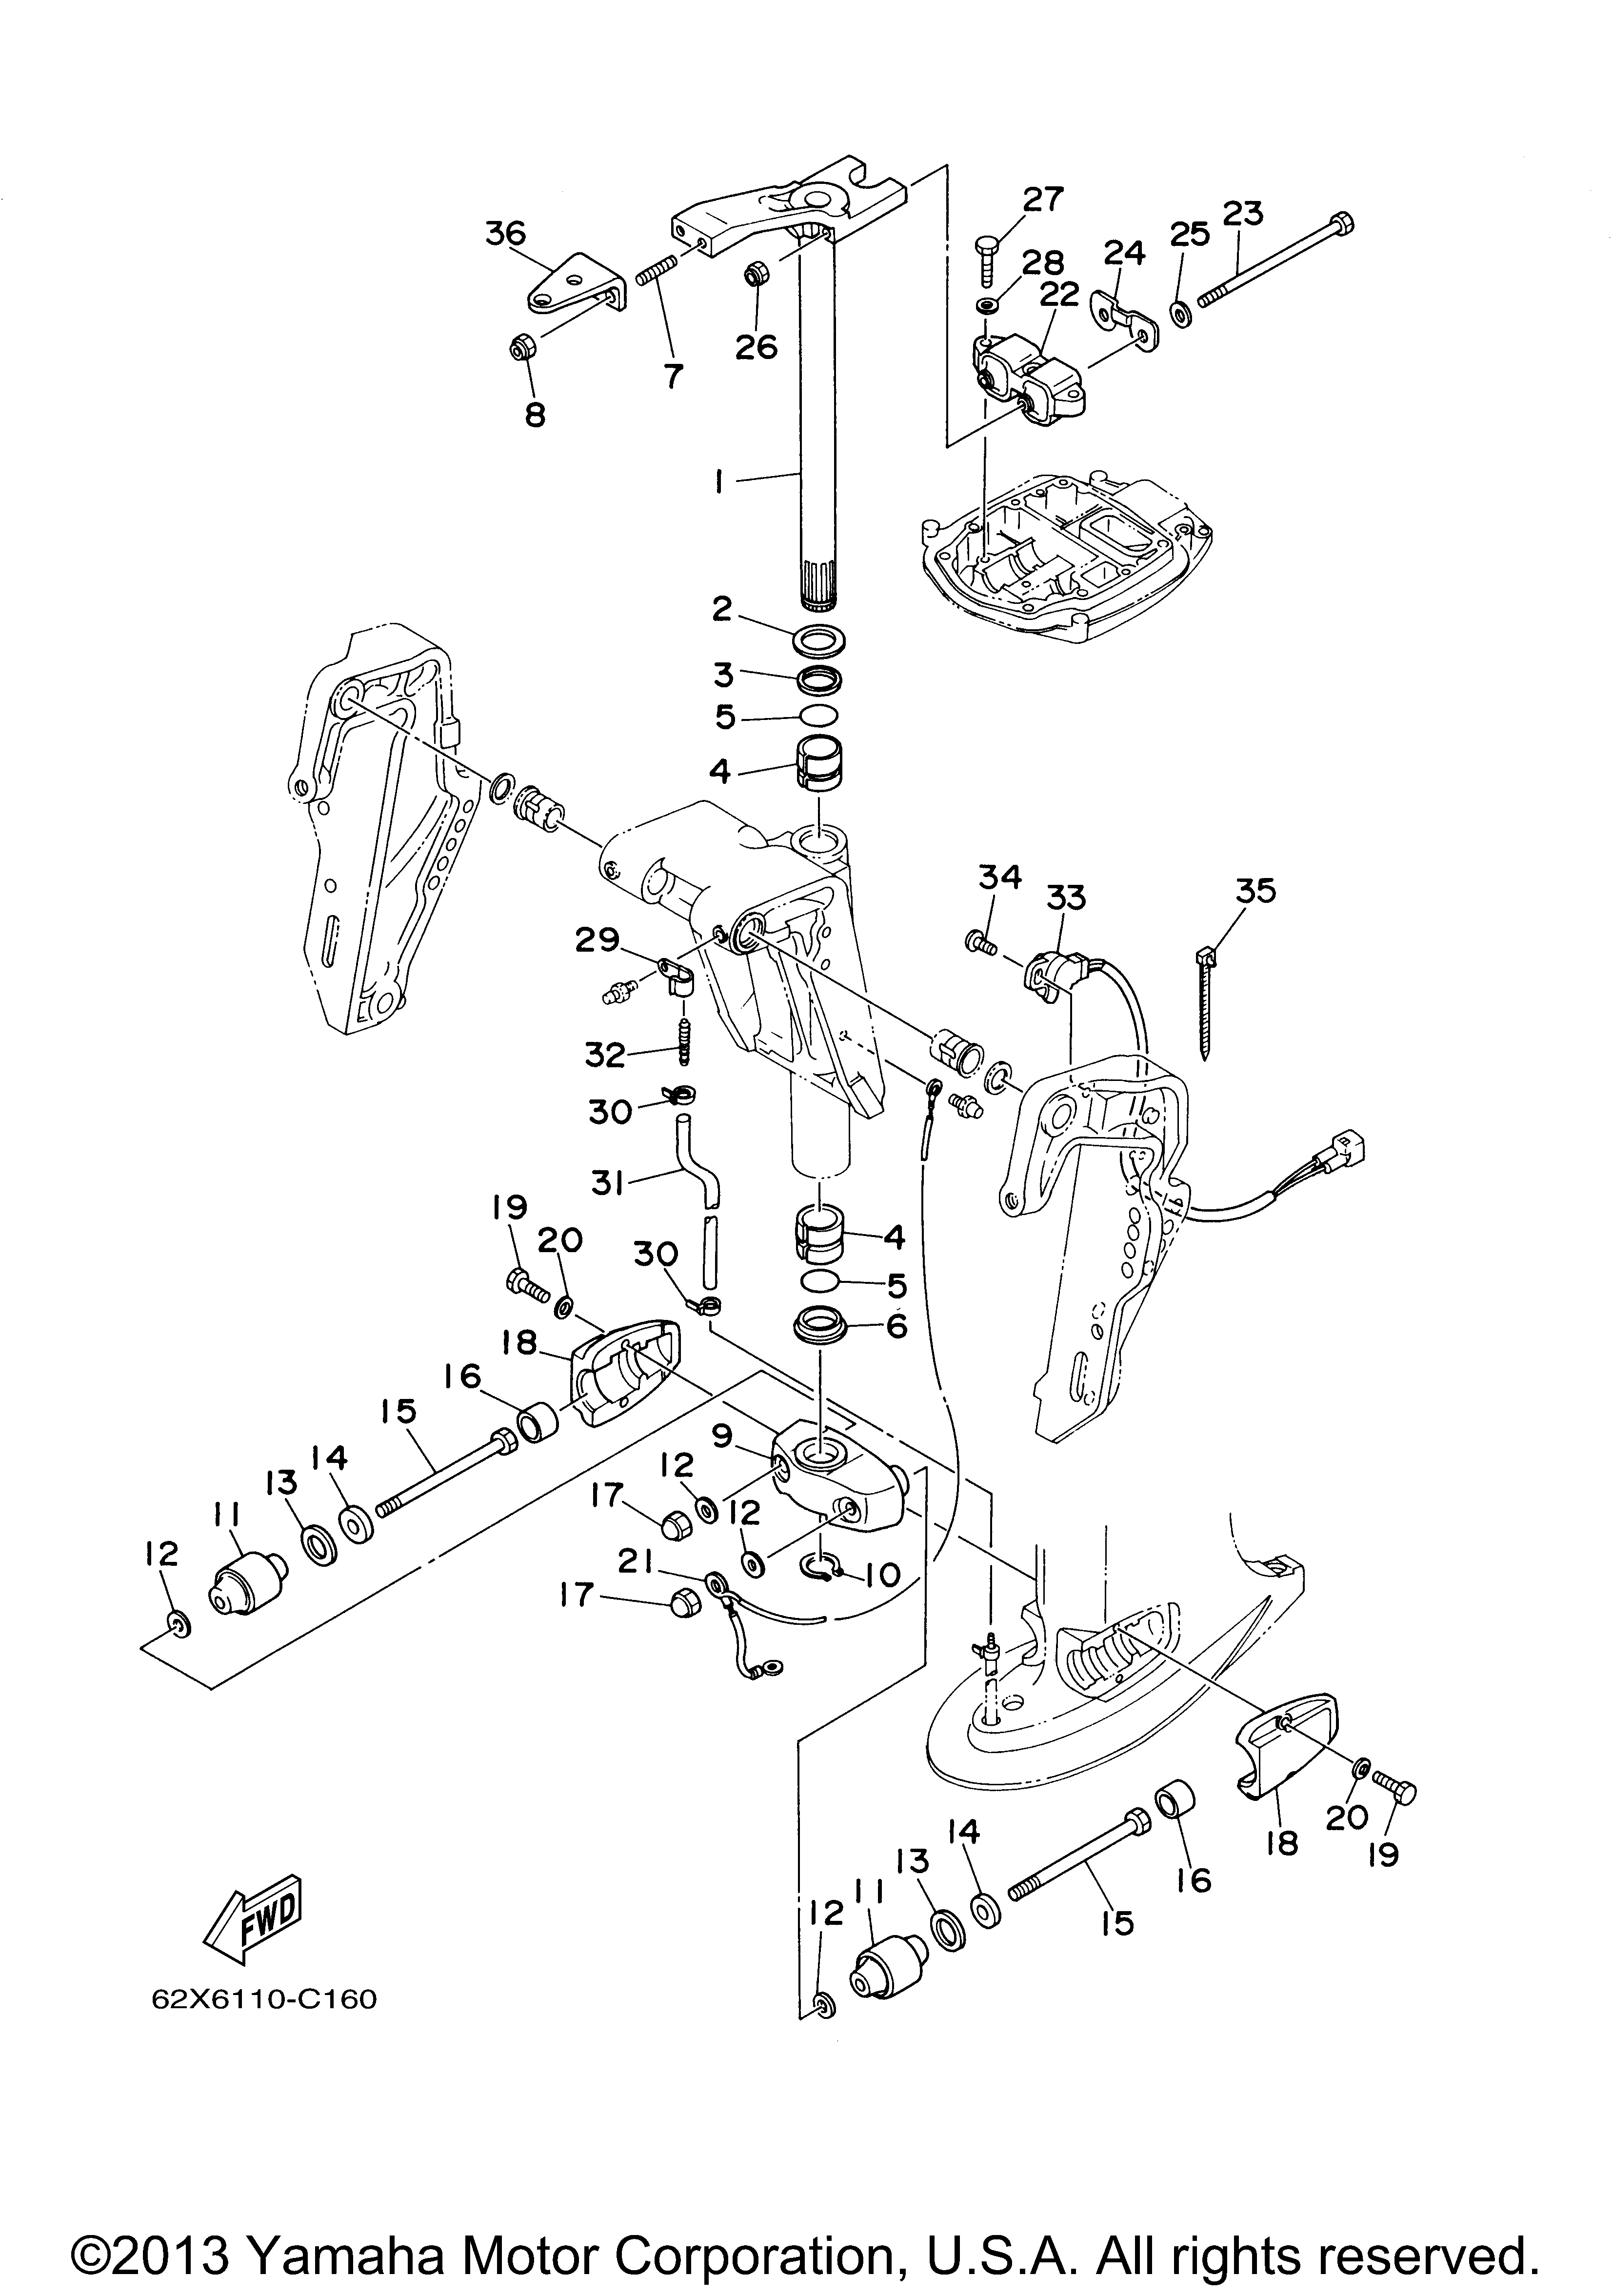 Yamaha 50tlr Wiring Diagram Archive Of Automotive Outboard Motors Diagrams Images Gallery 0406 Bracket 2 Motor Rh Vansoutboardparts Com